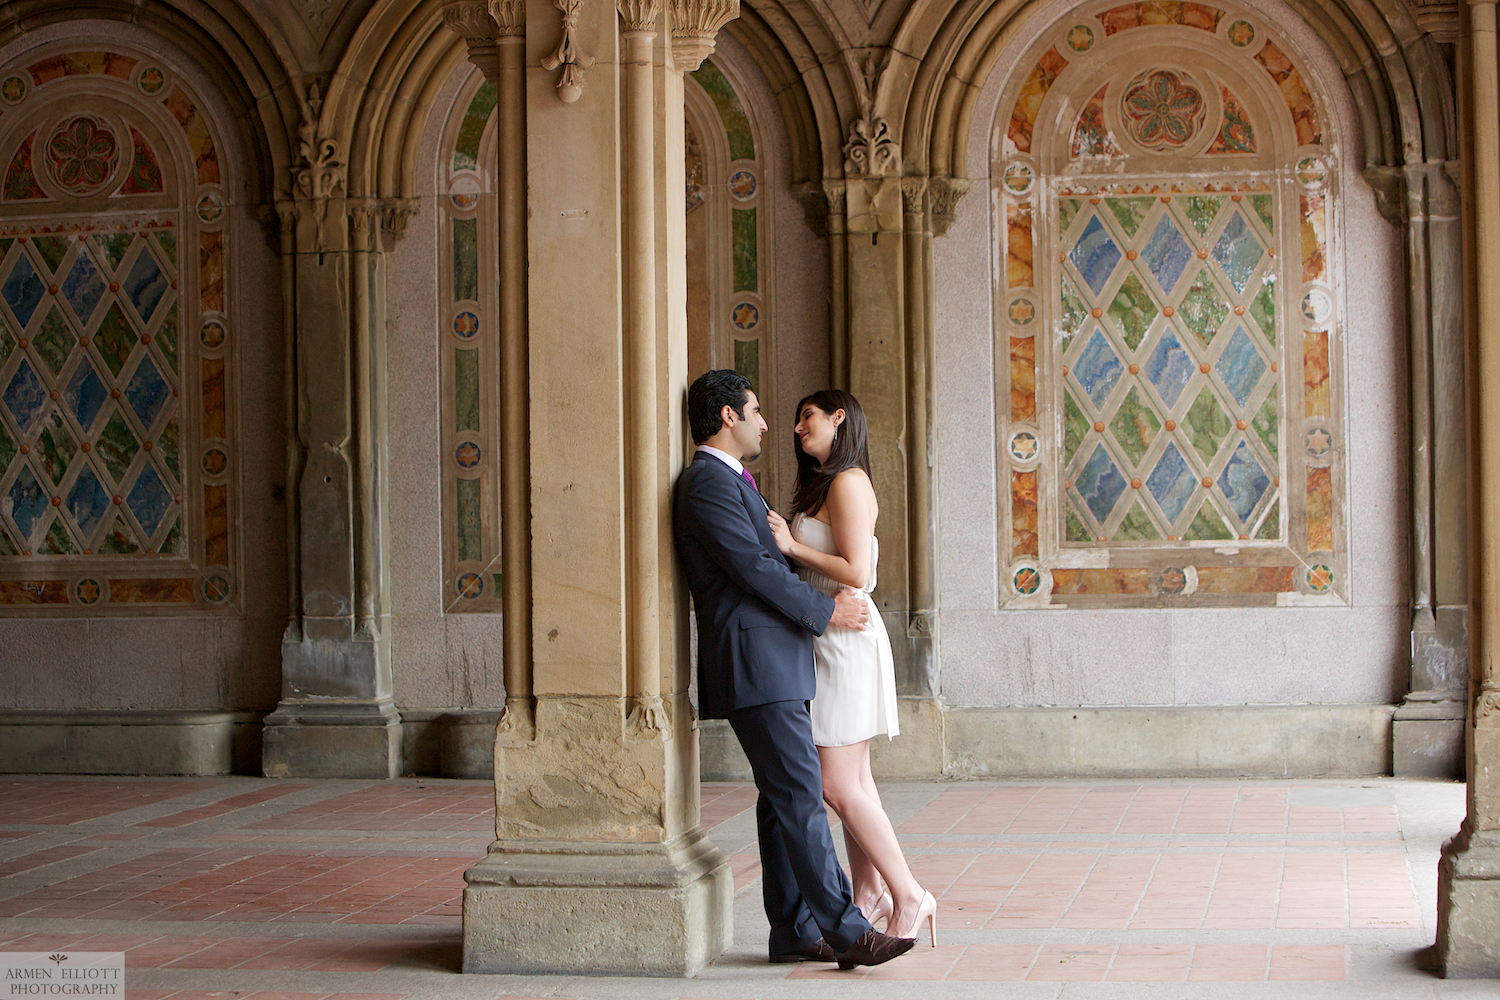 Wedding Photography Lehigh Valley: Lehigh Valley Engagement Session Photos